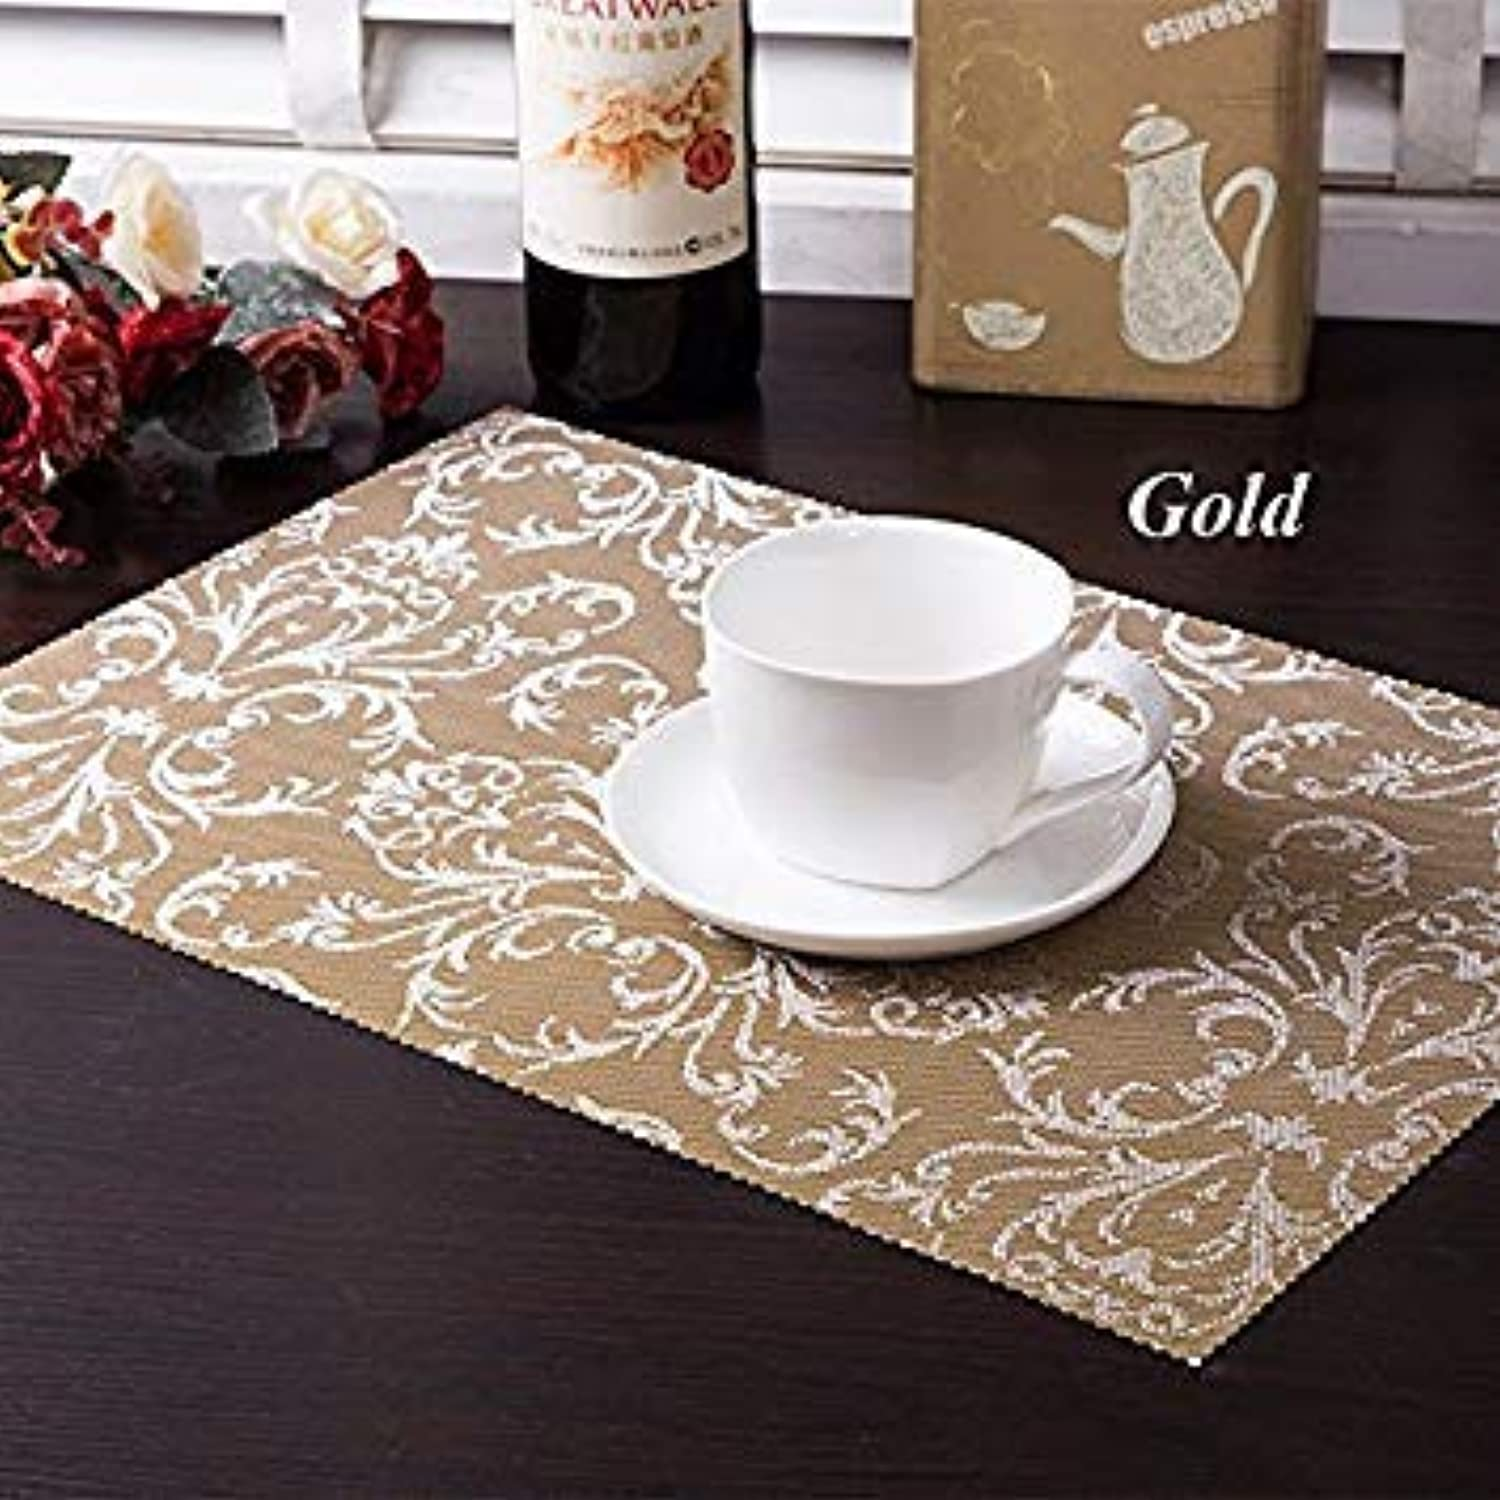 4 Pcs Lot PVC Placemat Dining Tables Mats Bar Mat Waterproof Kitchen Accessories Dining Table Mat Bowl Pad Table Decoration